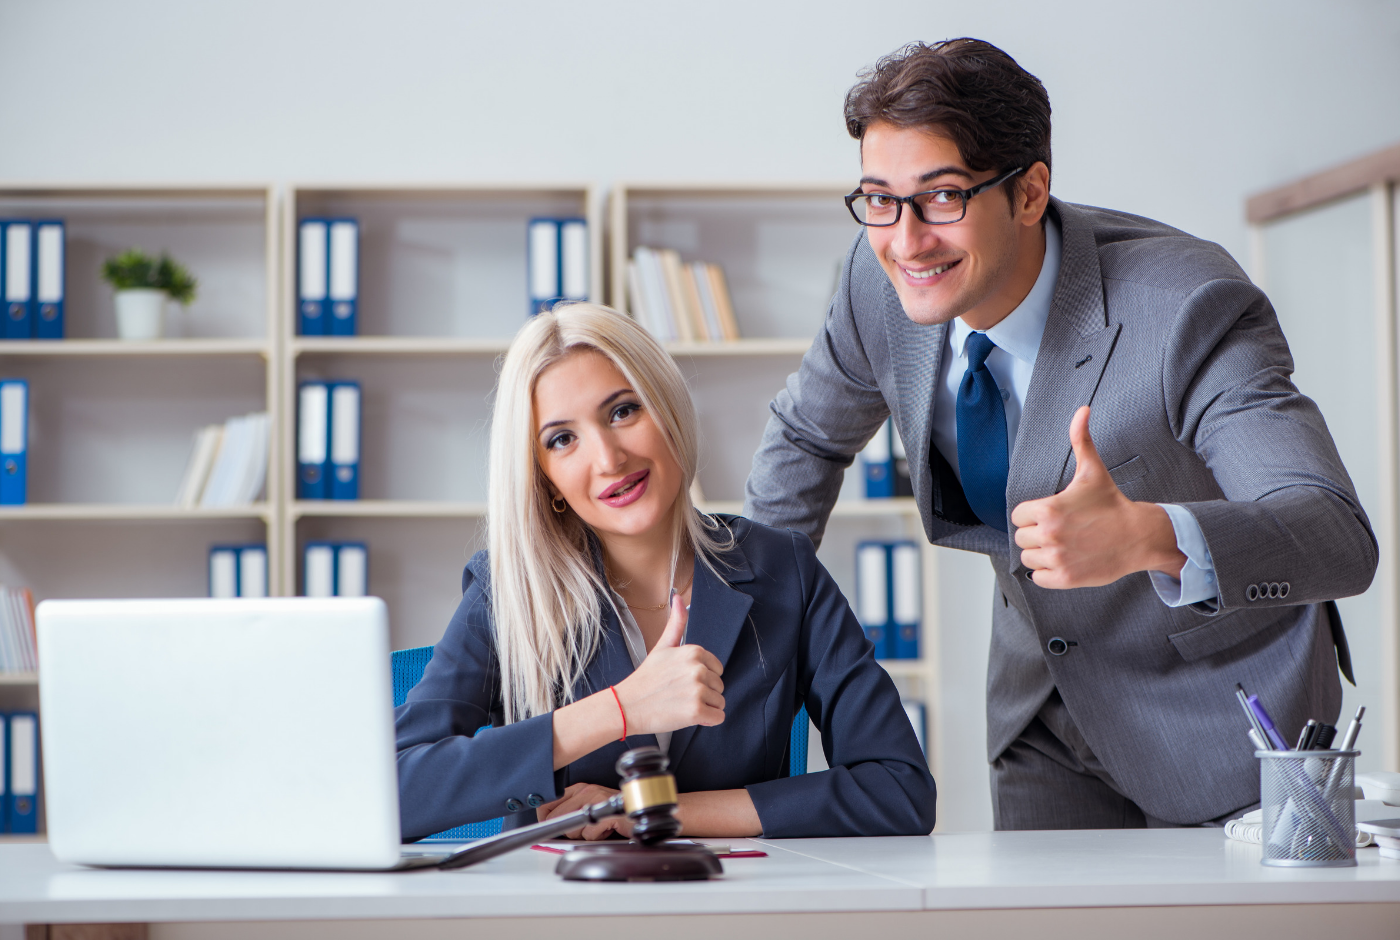 Professional man and woman  in business suits with fake smiles at desk with laptop and gavel on it